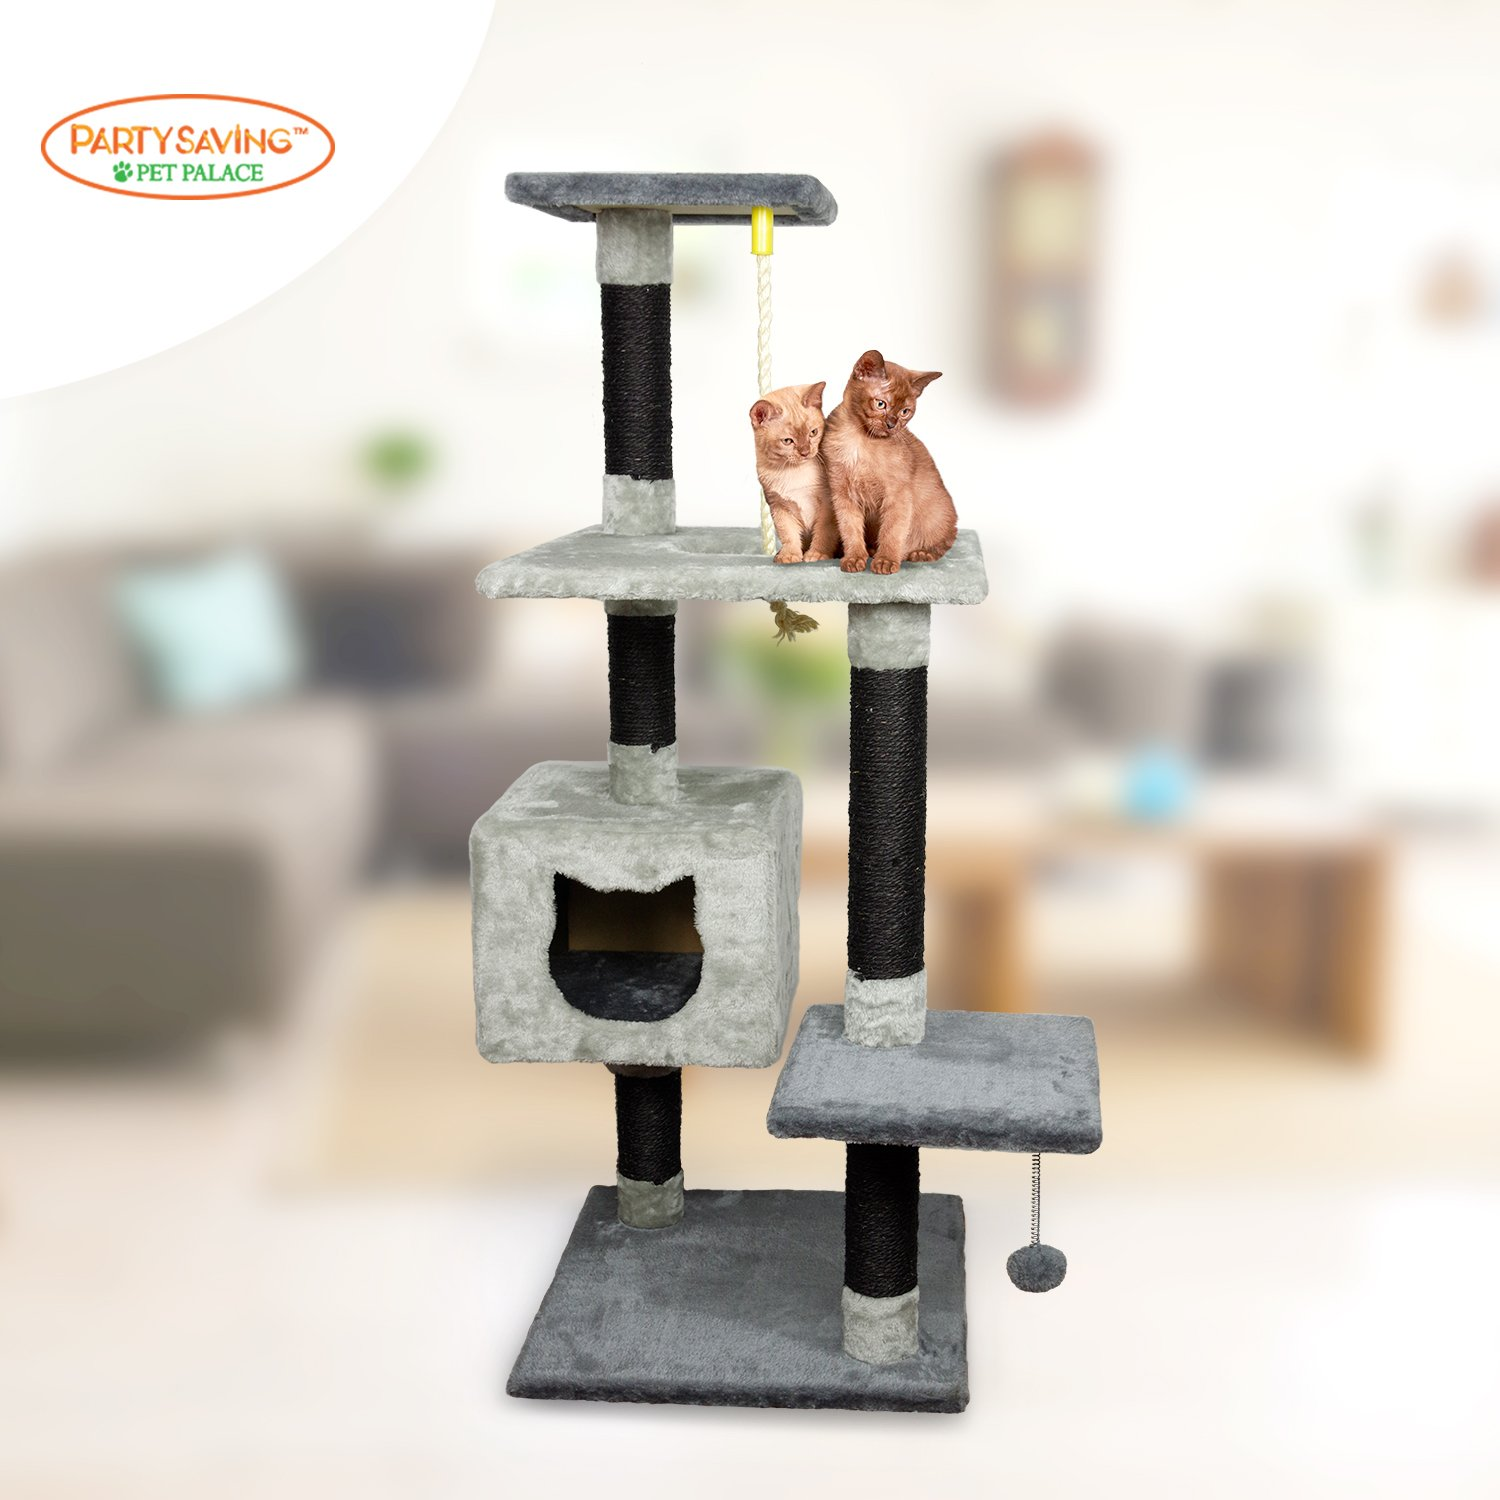 PARTYSAVING PET PALACE Multilevel Cat Condo Activity Tree, Fur Bed, Scratching Posts, Sisal Rope, Hanging Ball, APL2085